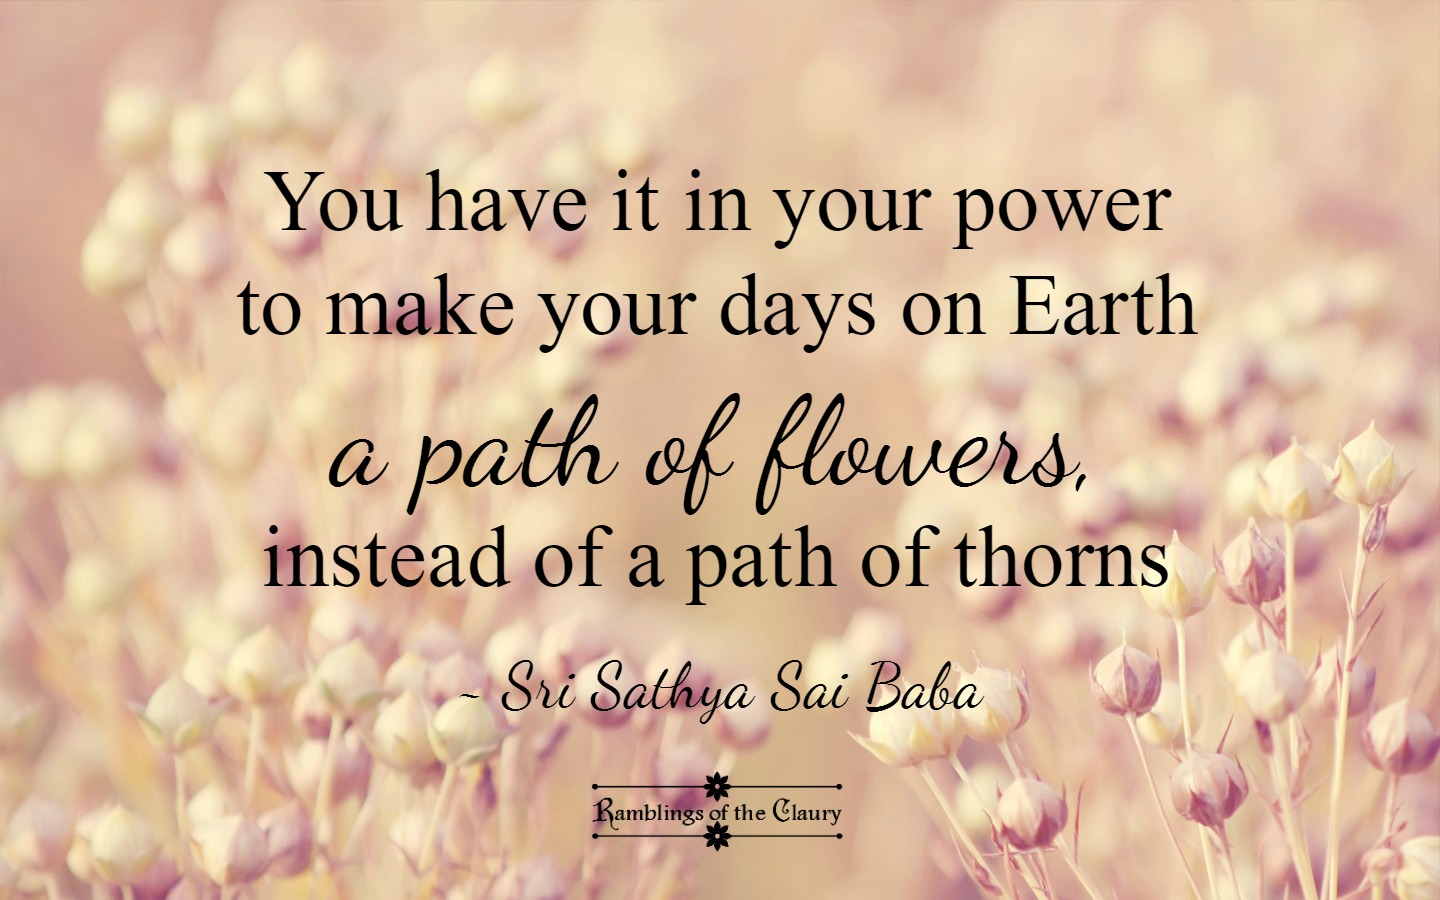 A Path of Flowers